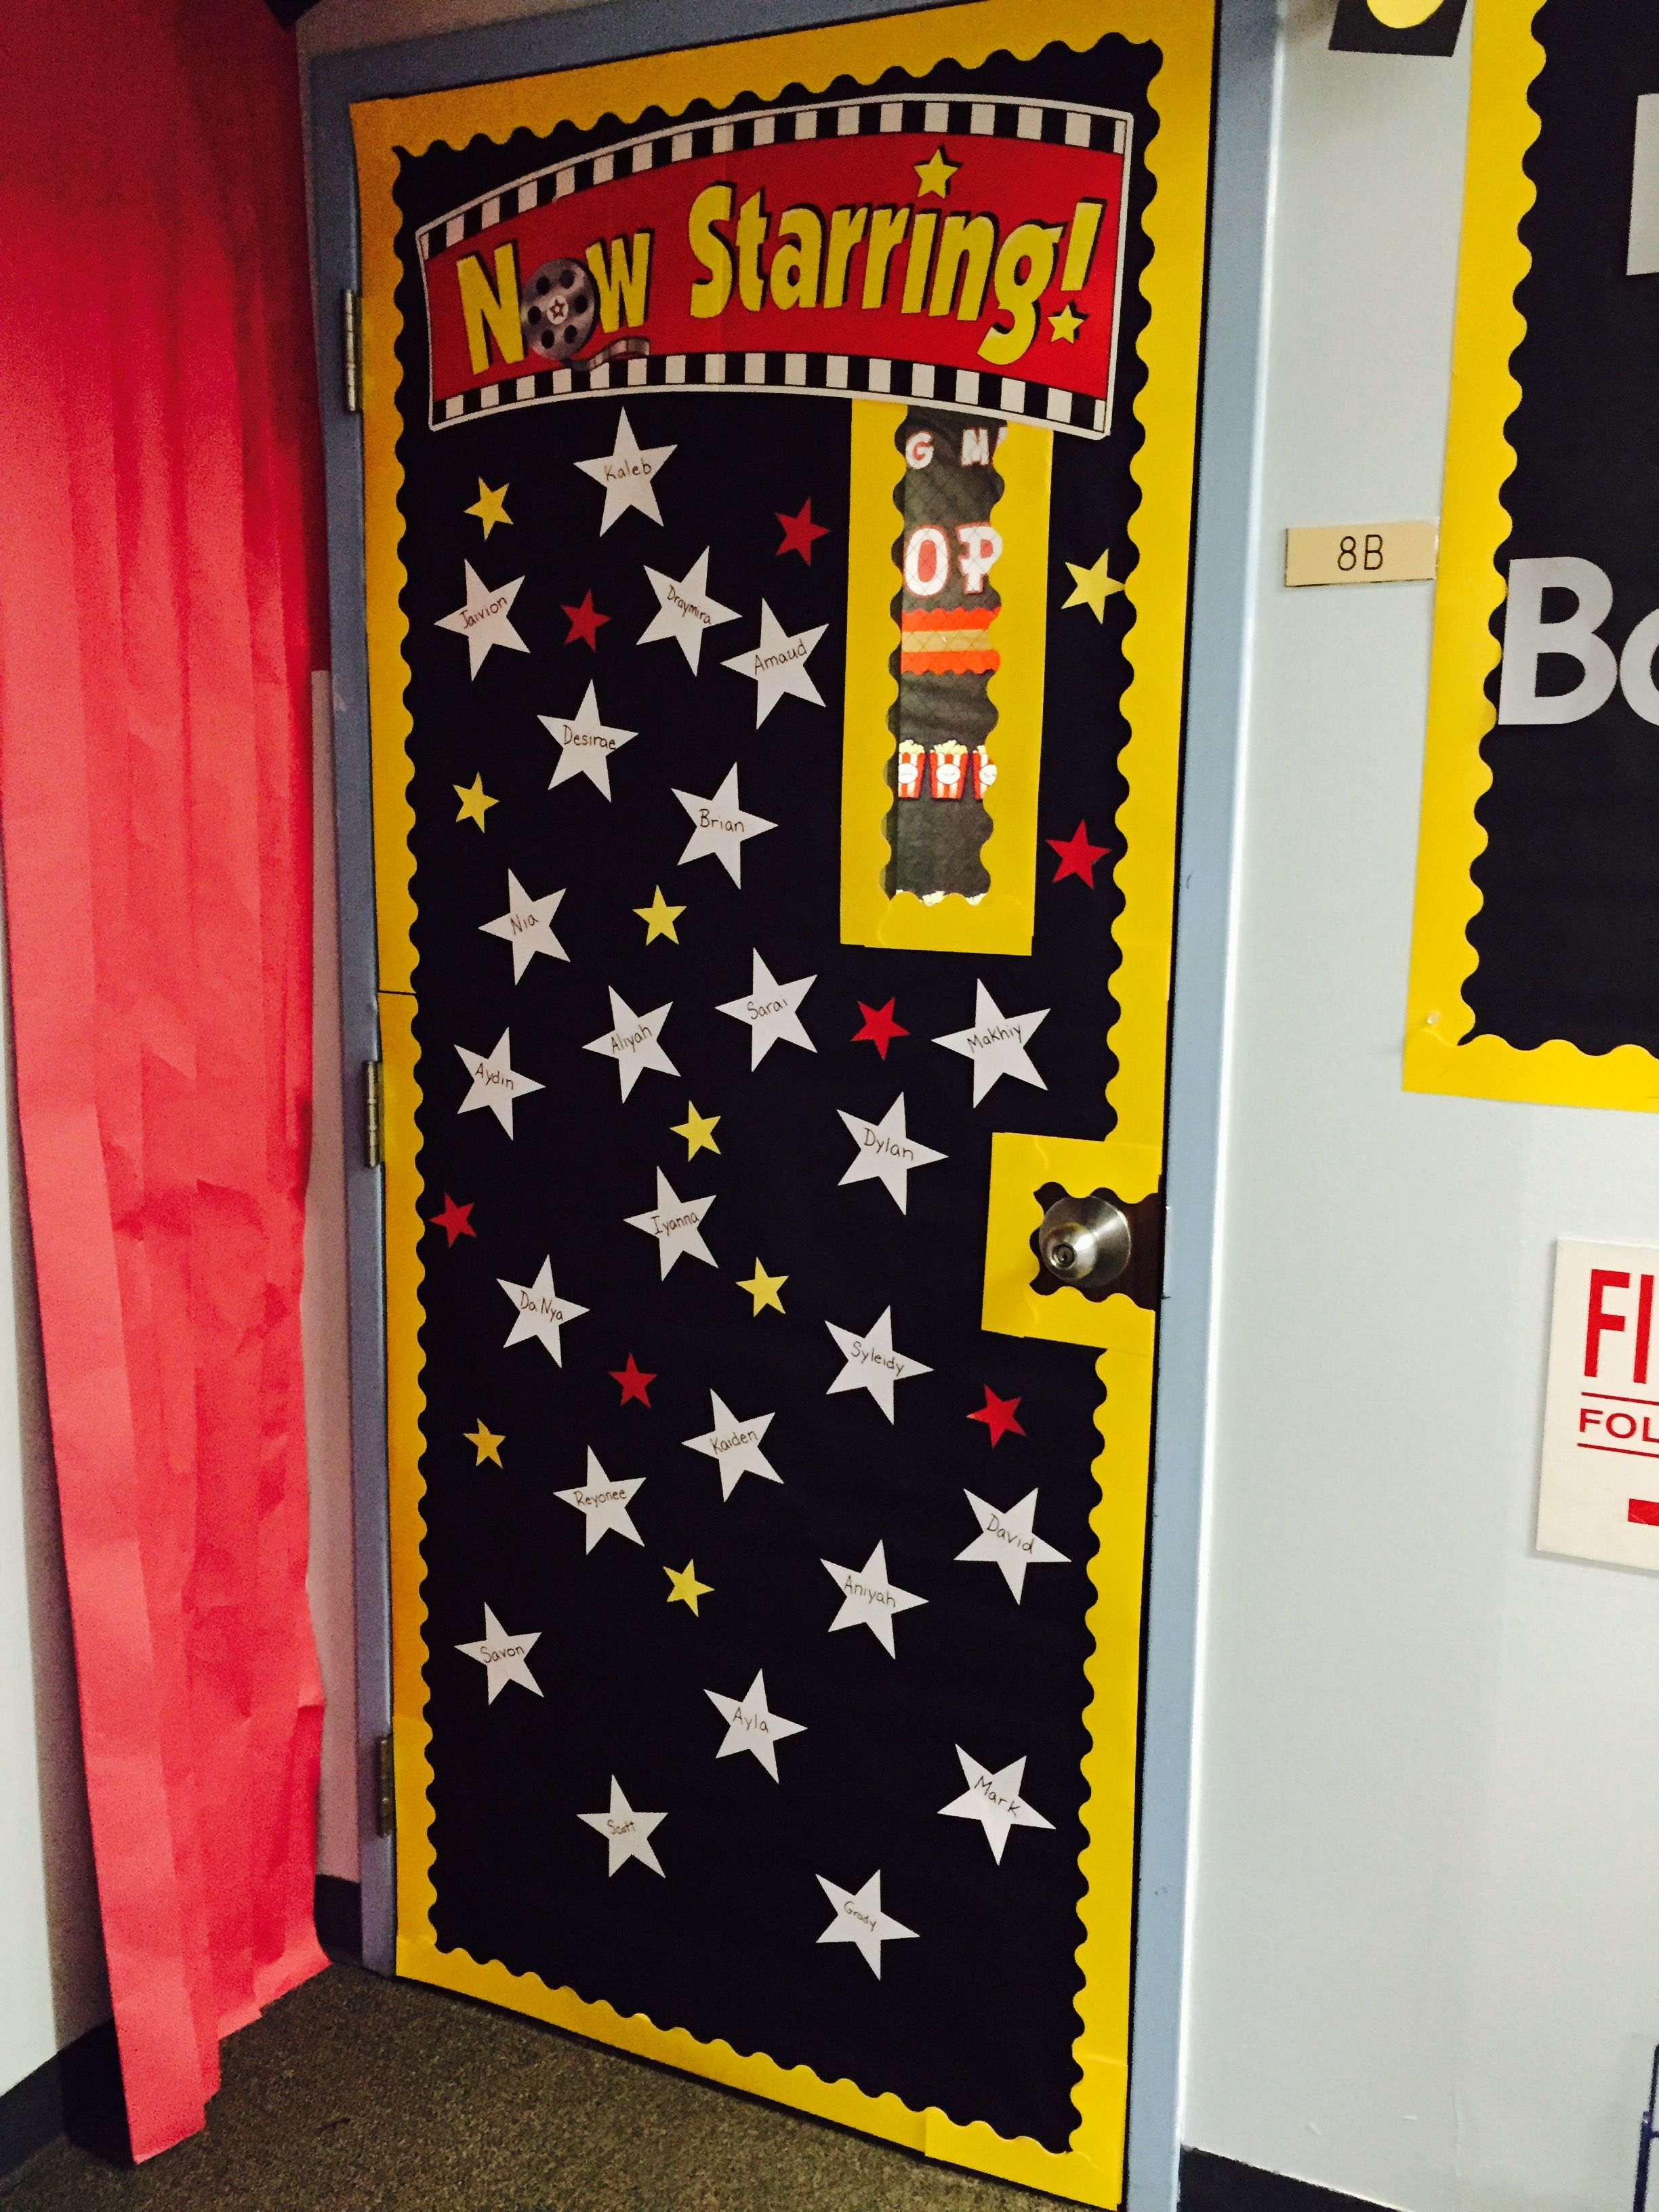 Hollywood Theme Classroom Door Now Starring Door Decorations Classroom Hollywood Theme Classroom Classroom Decorations